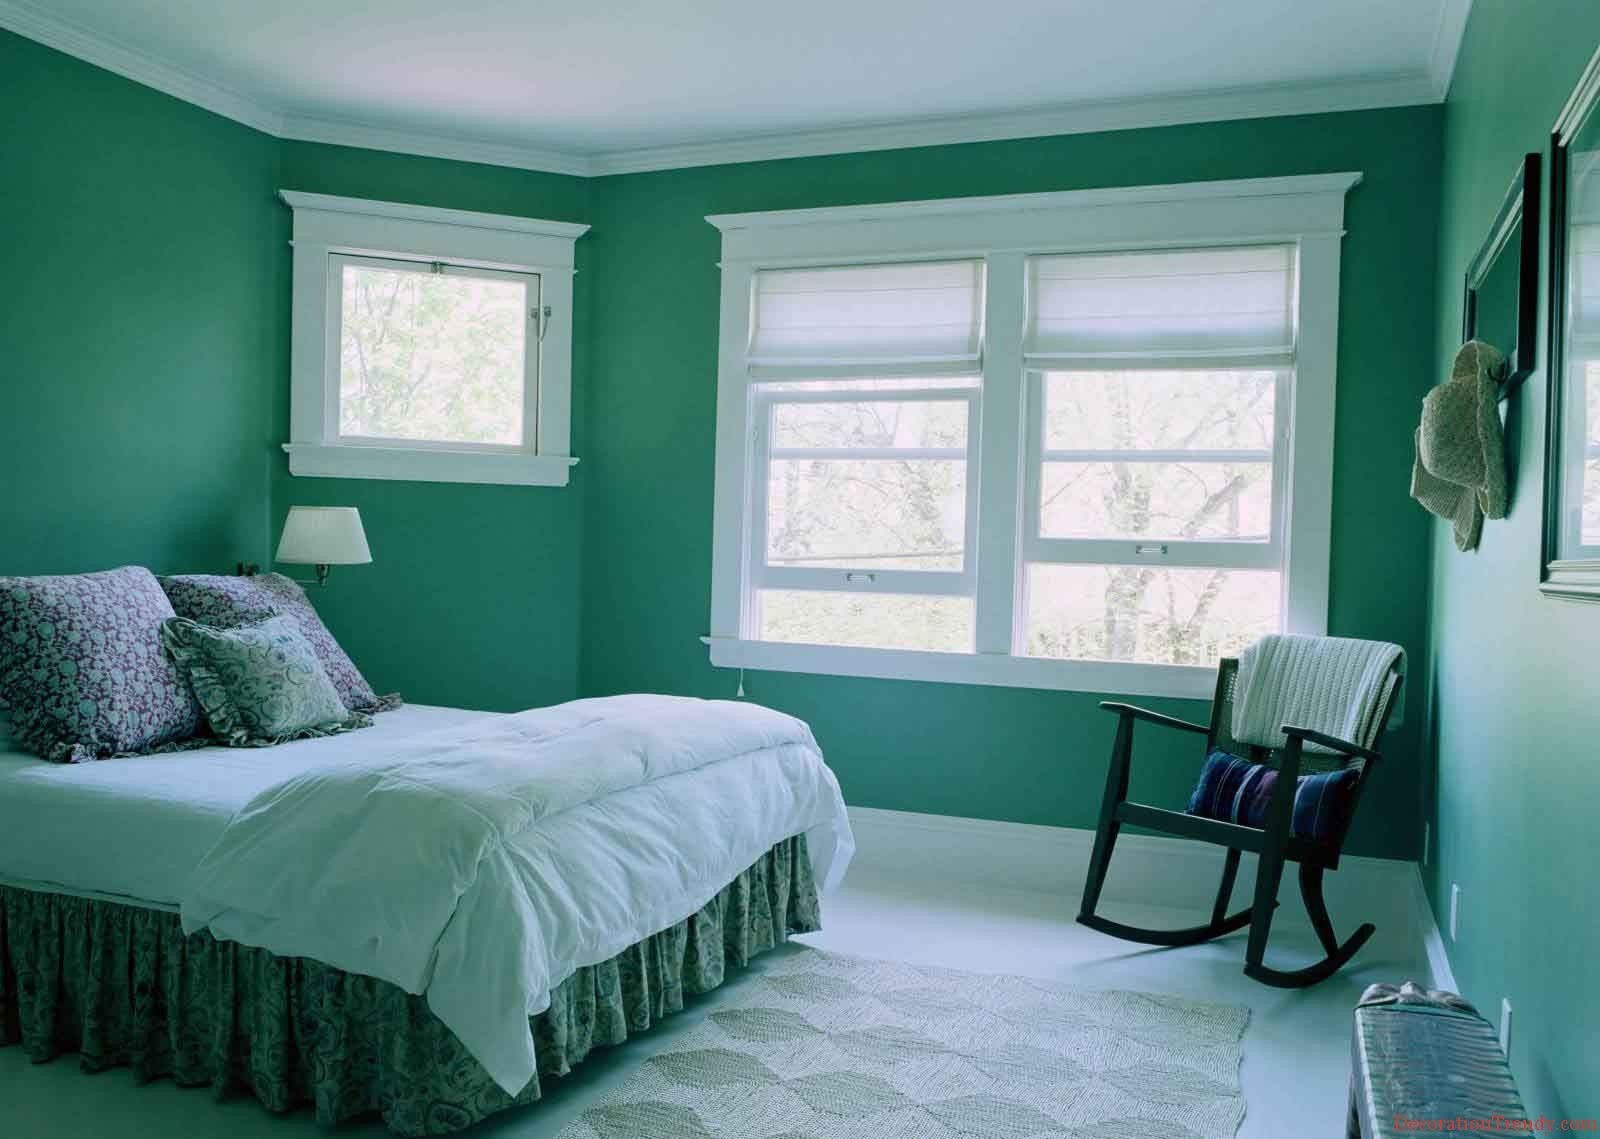 Green Bedroom Color Schemes the amazing persian green bedroom color scheme with white ceiling